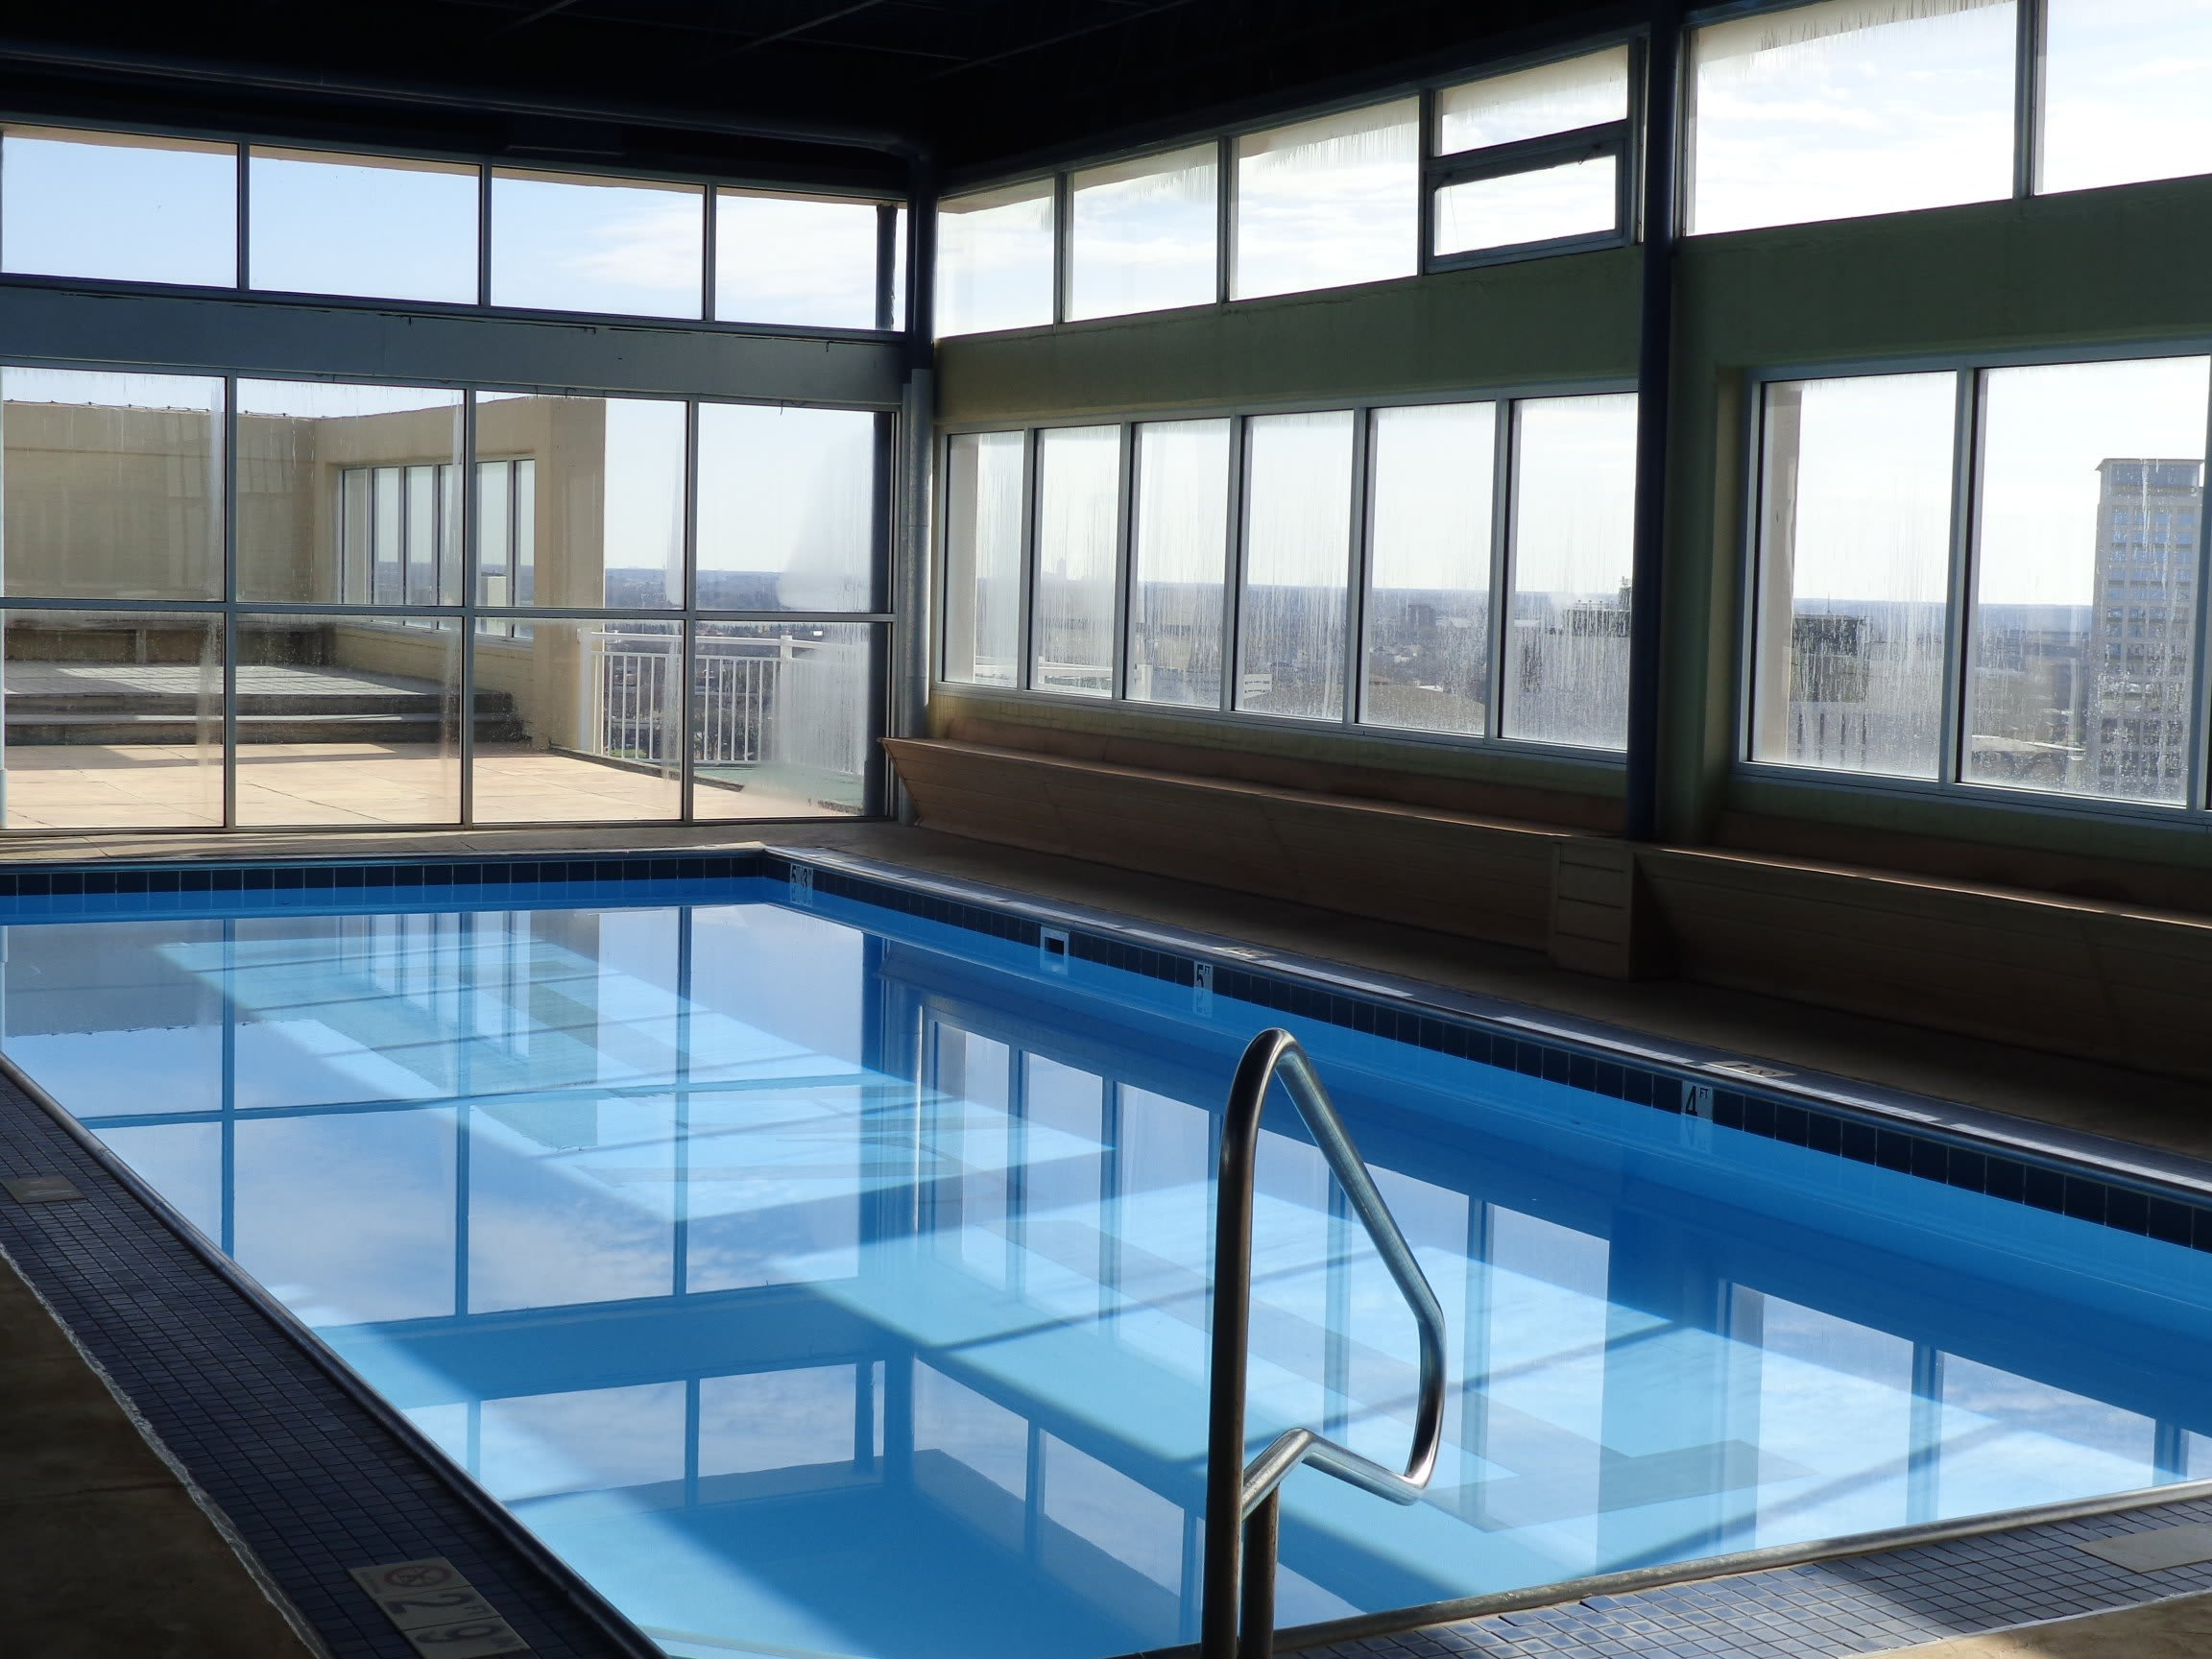 Indoor Swimming Pool at Hague Towers in Norfolk, Virginia